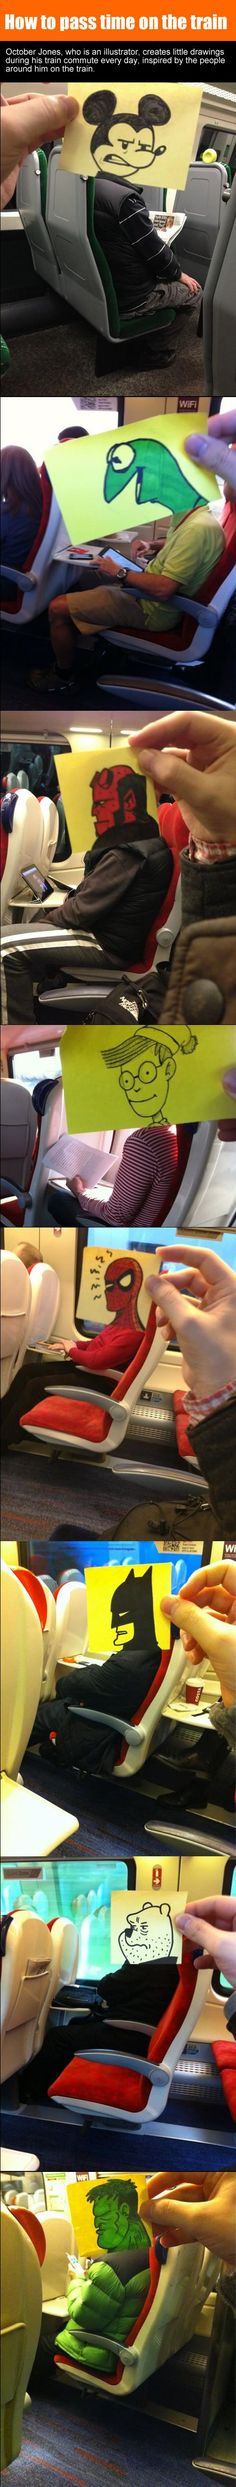 what to do when you are bored on a train or an airplane.